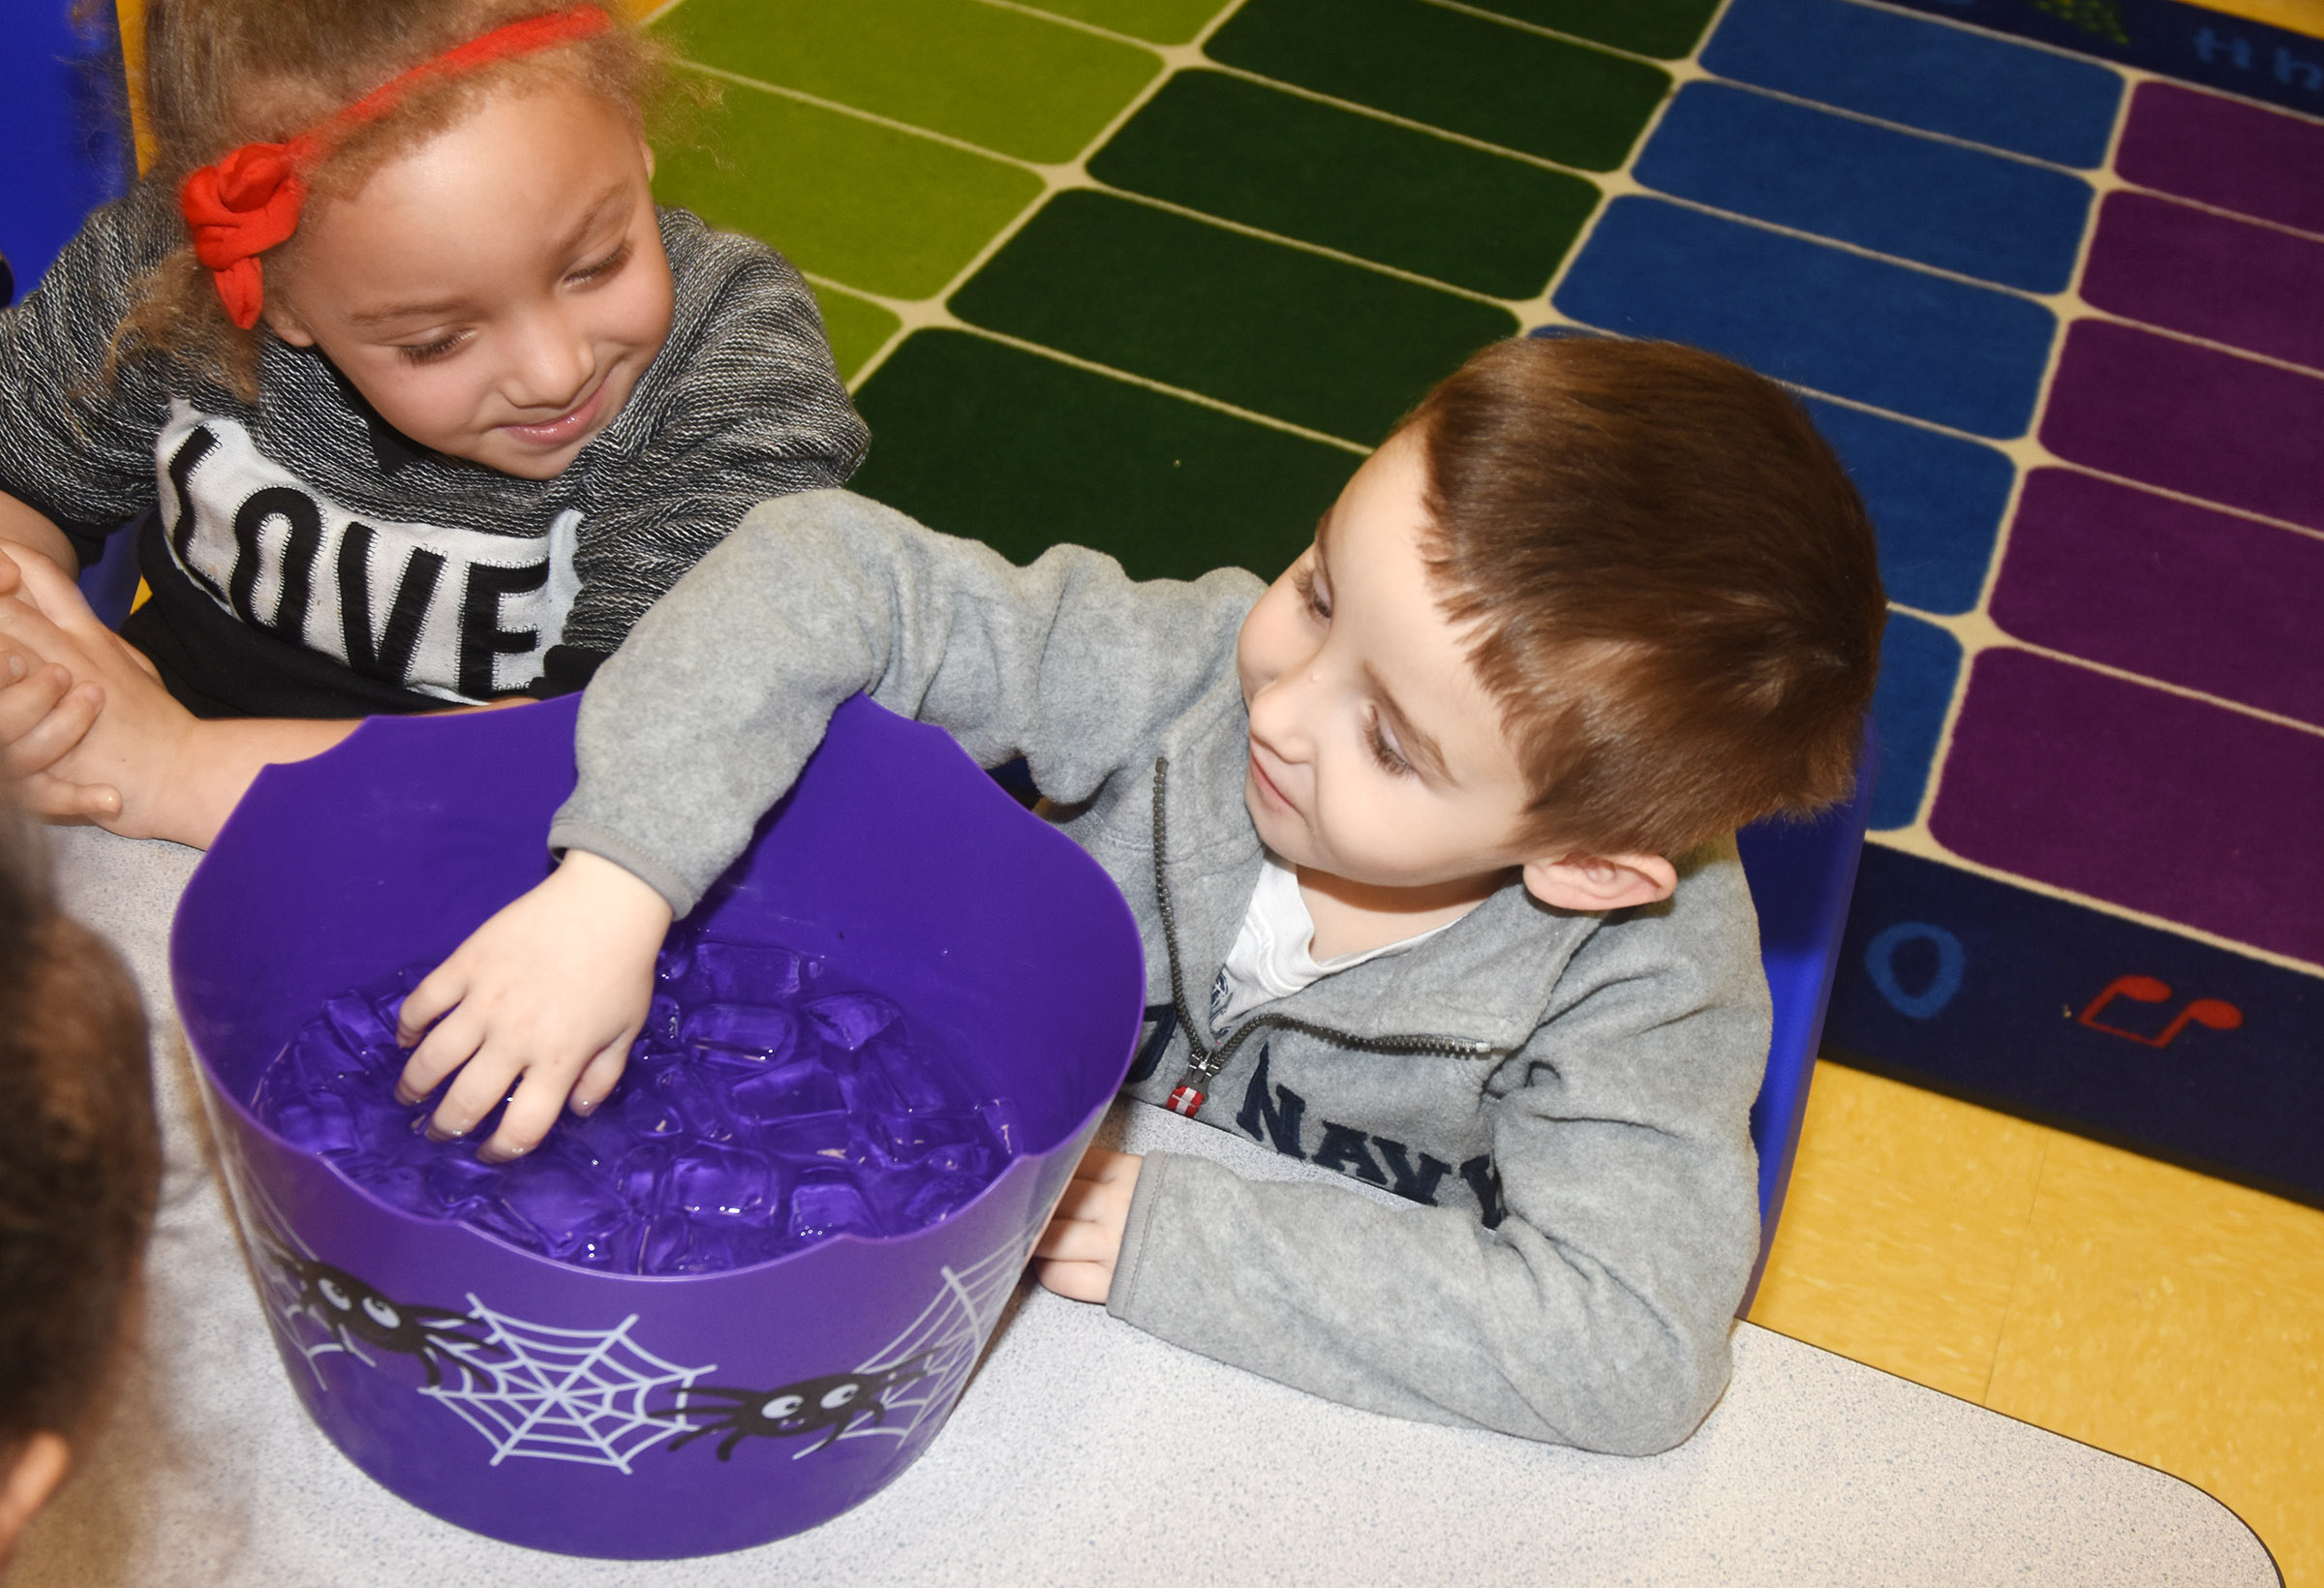 CES preschool student Noelan McMahan places his hand inside ice water to see how cold it is, as his classmate Jayla Barbee watches.